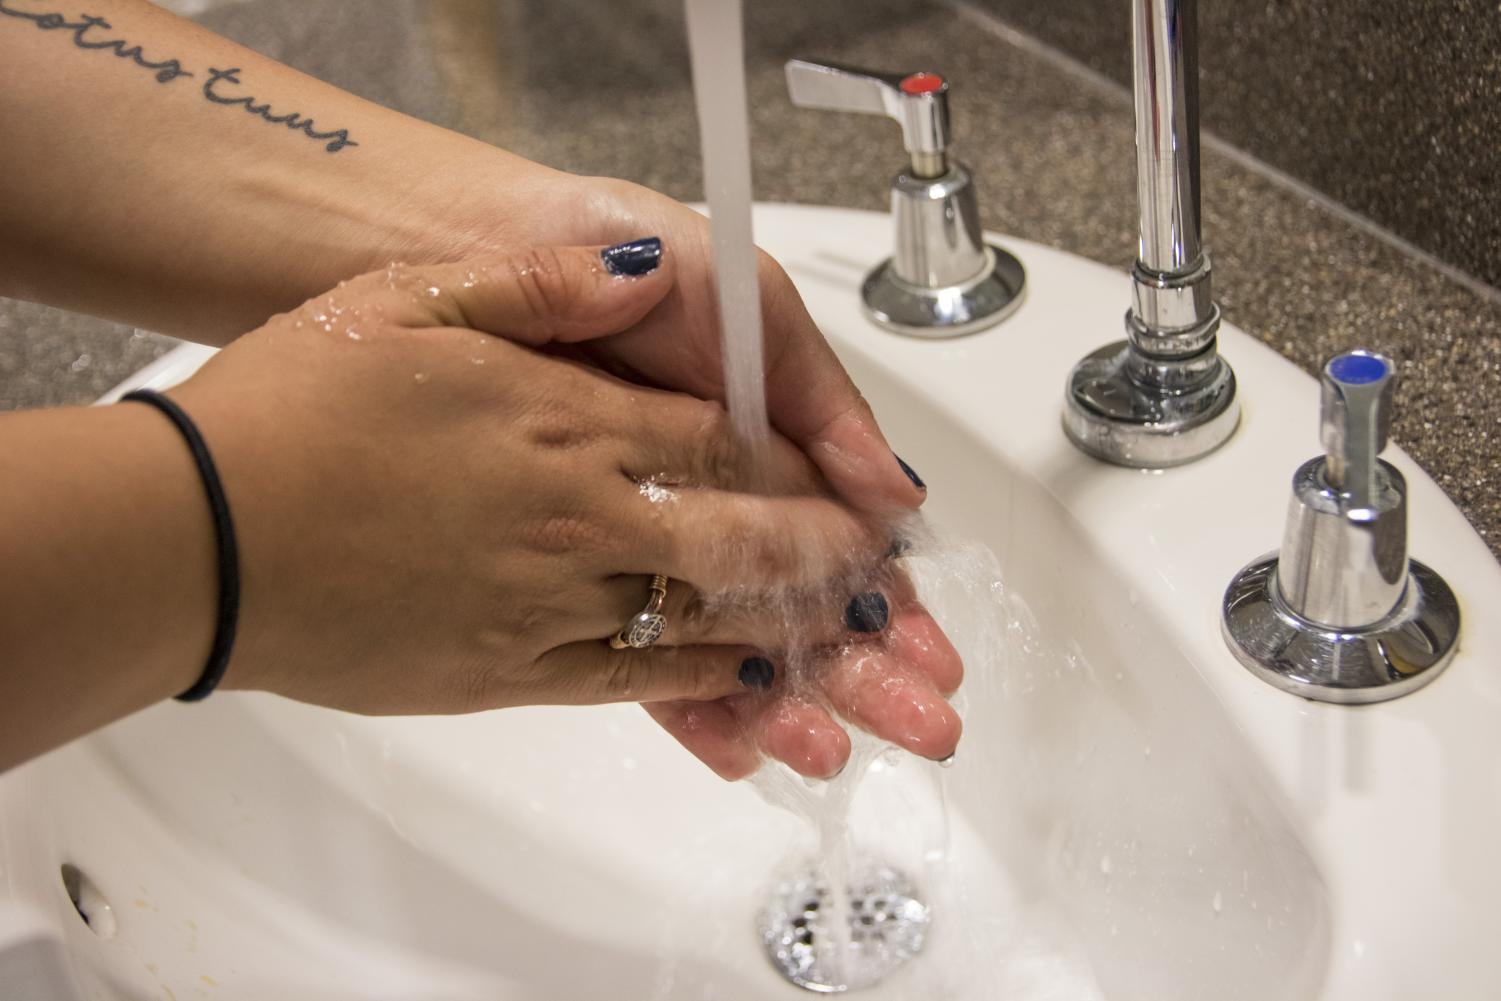 Besides the vaccine, hand washing is one of the best preventive methods for hepatitis A.